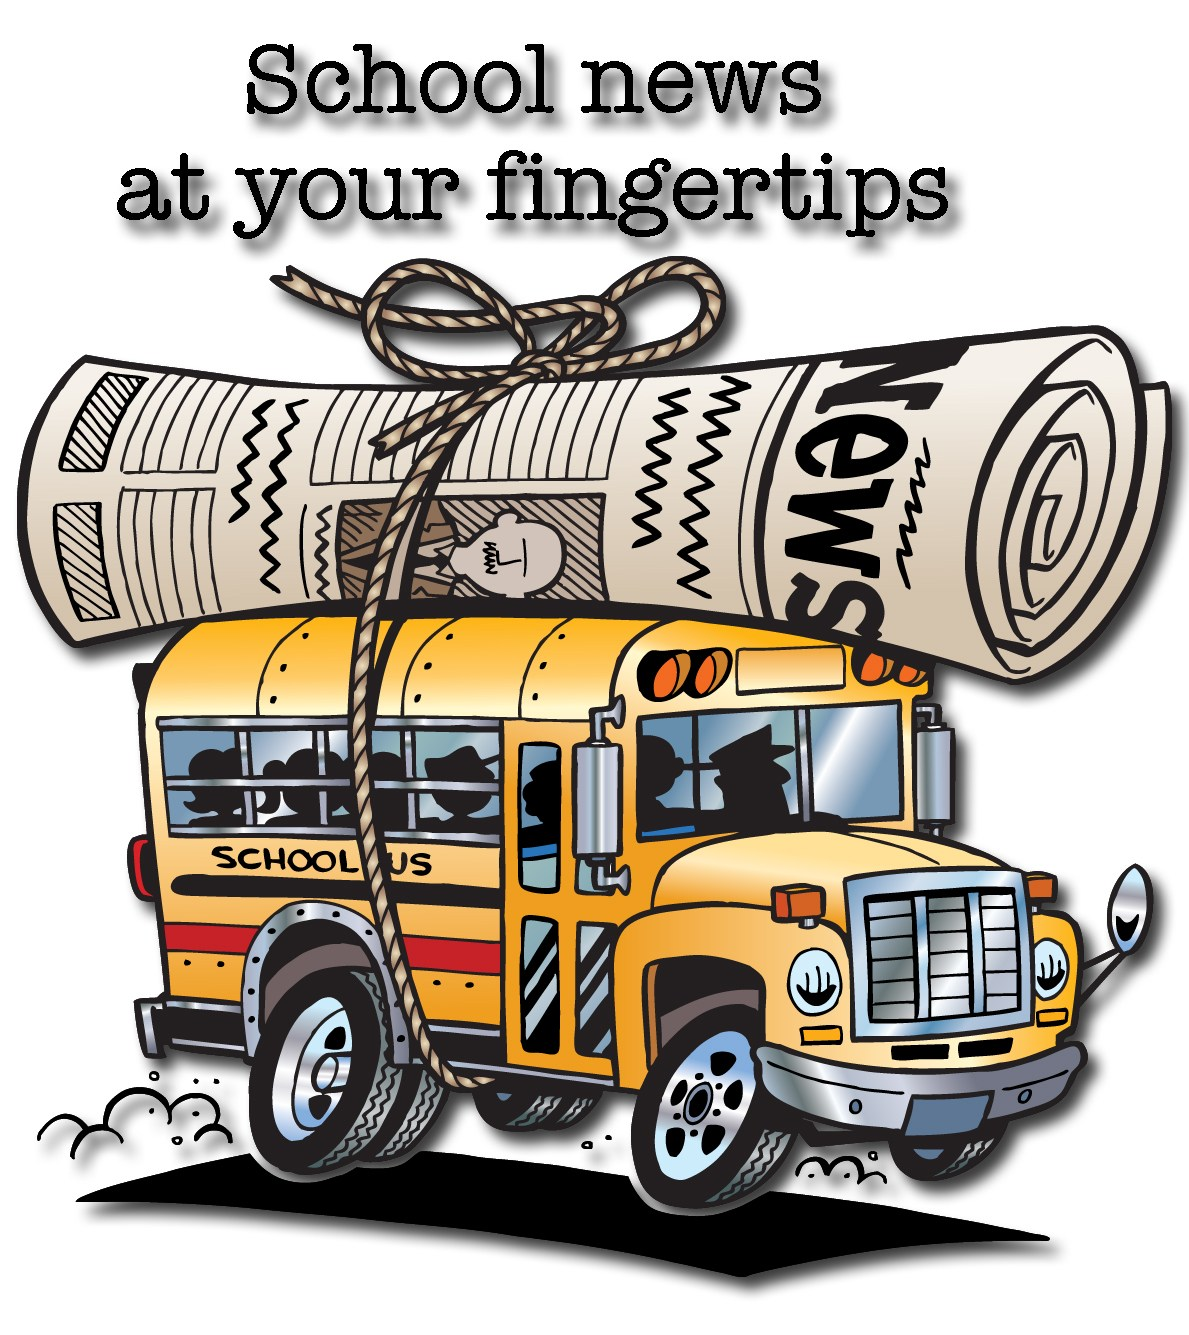 image of rolled newpaper on top of a school bus